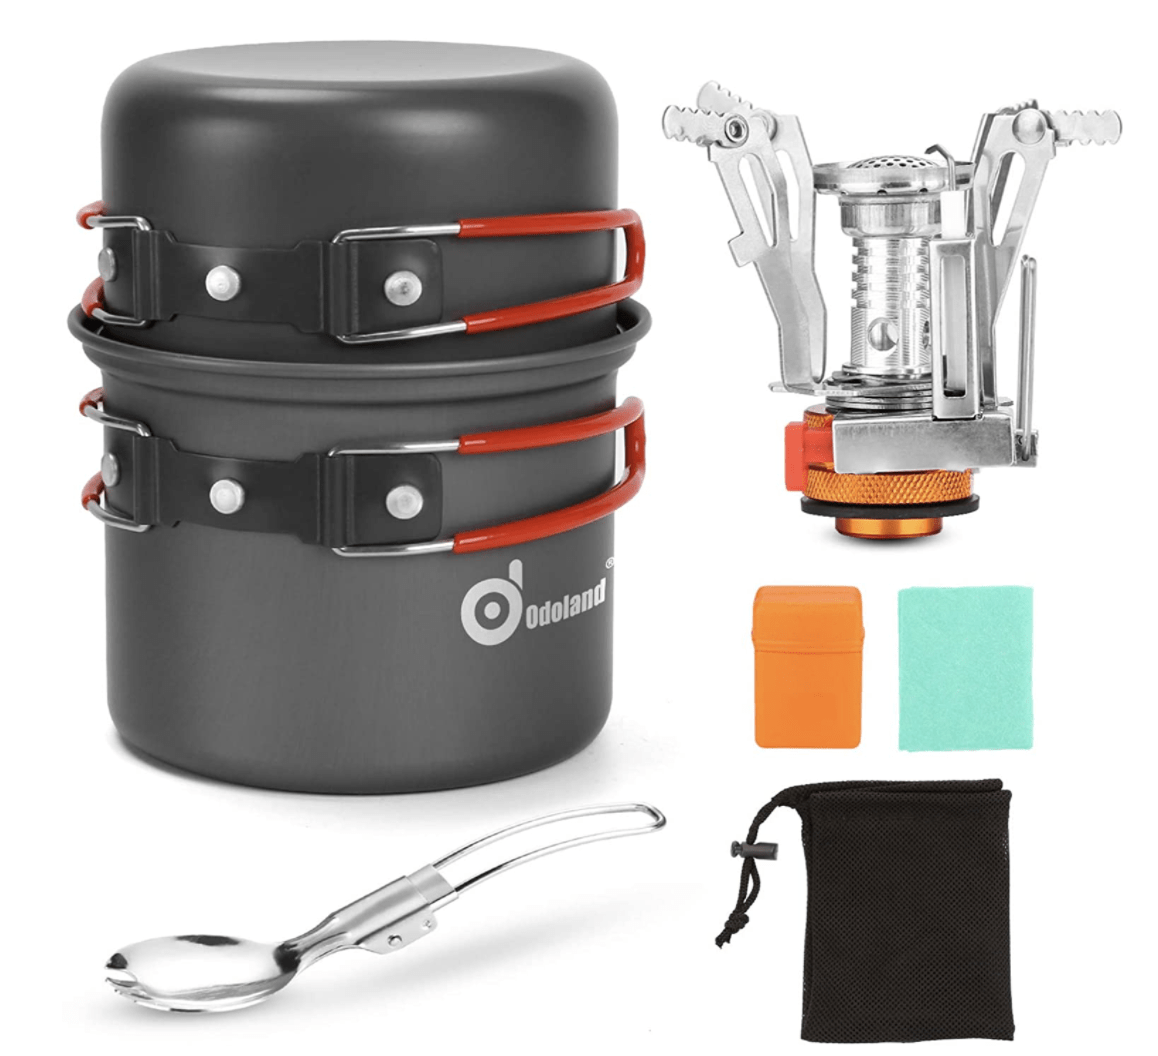 Amazon Prime Day Summer Deals - Camping Cookware